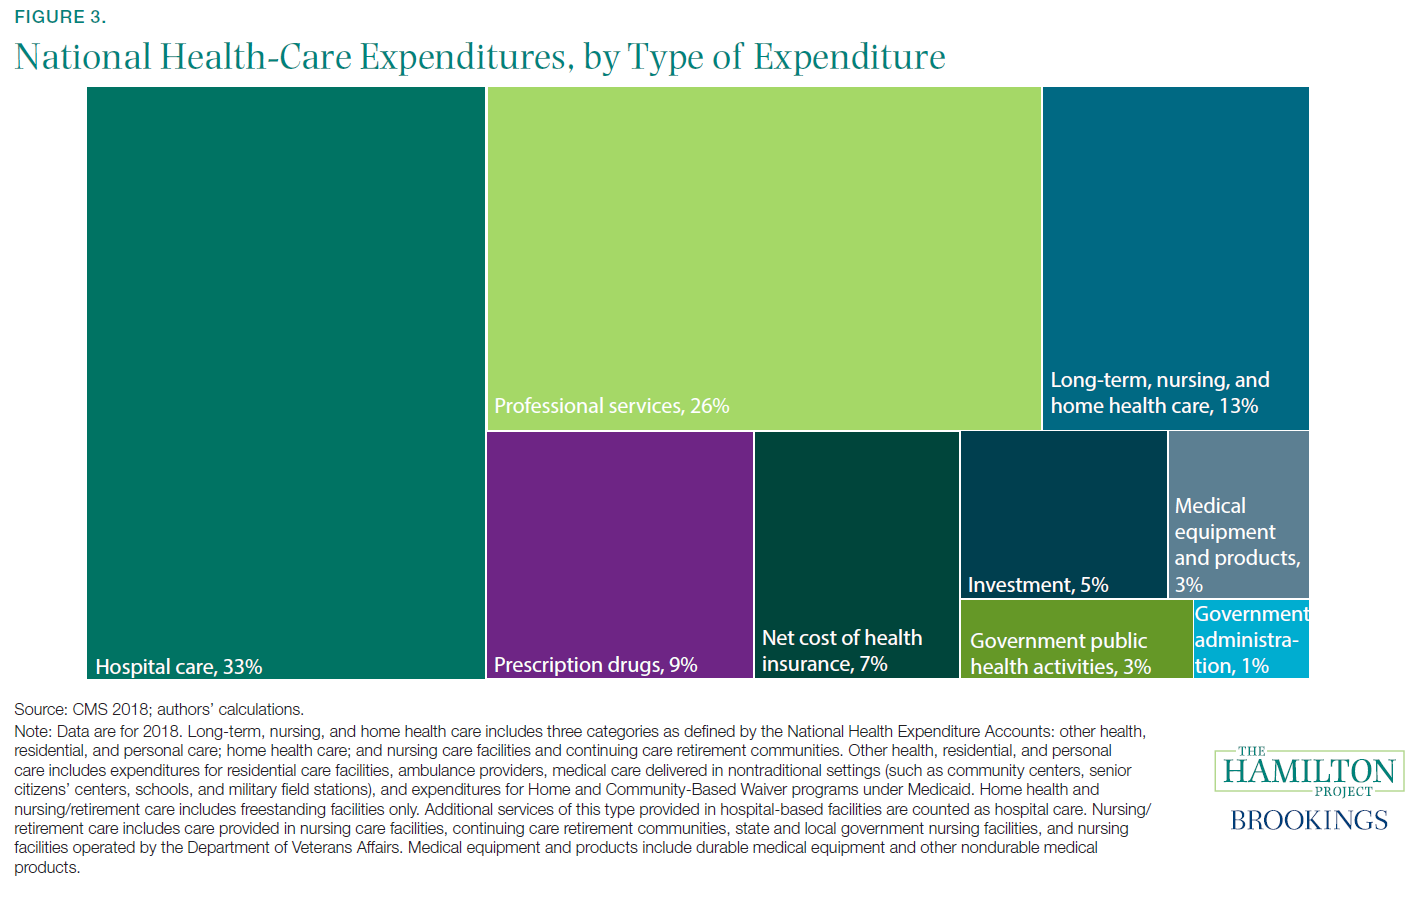 Figure 3. National Health-Care Expenditures, by Type of Expenditure